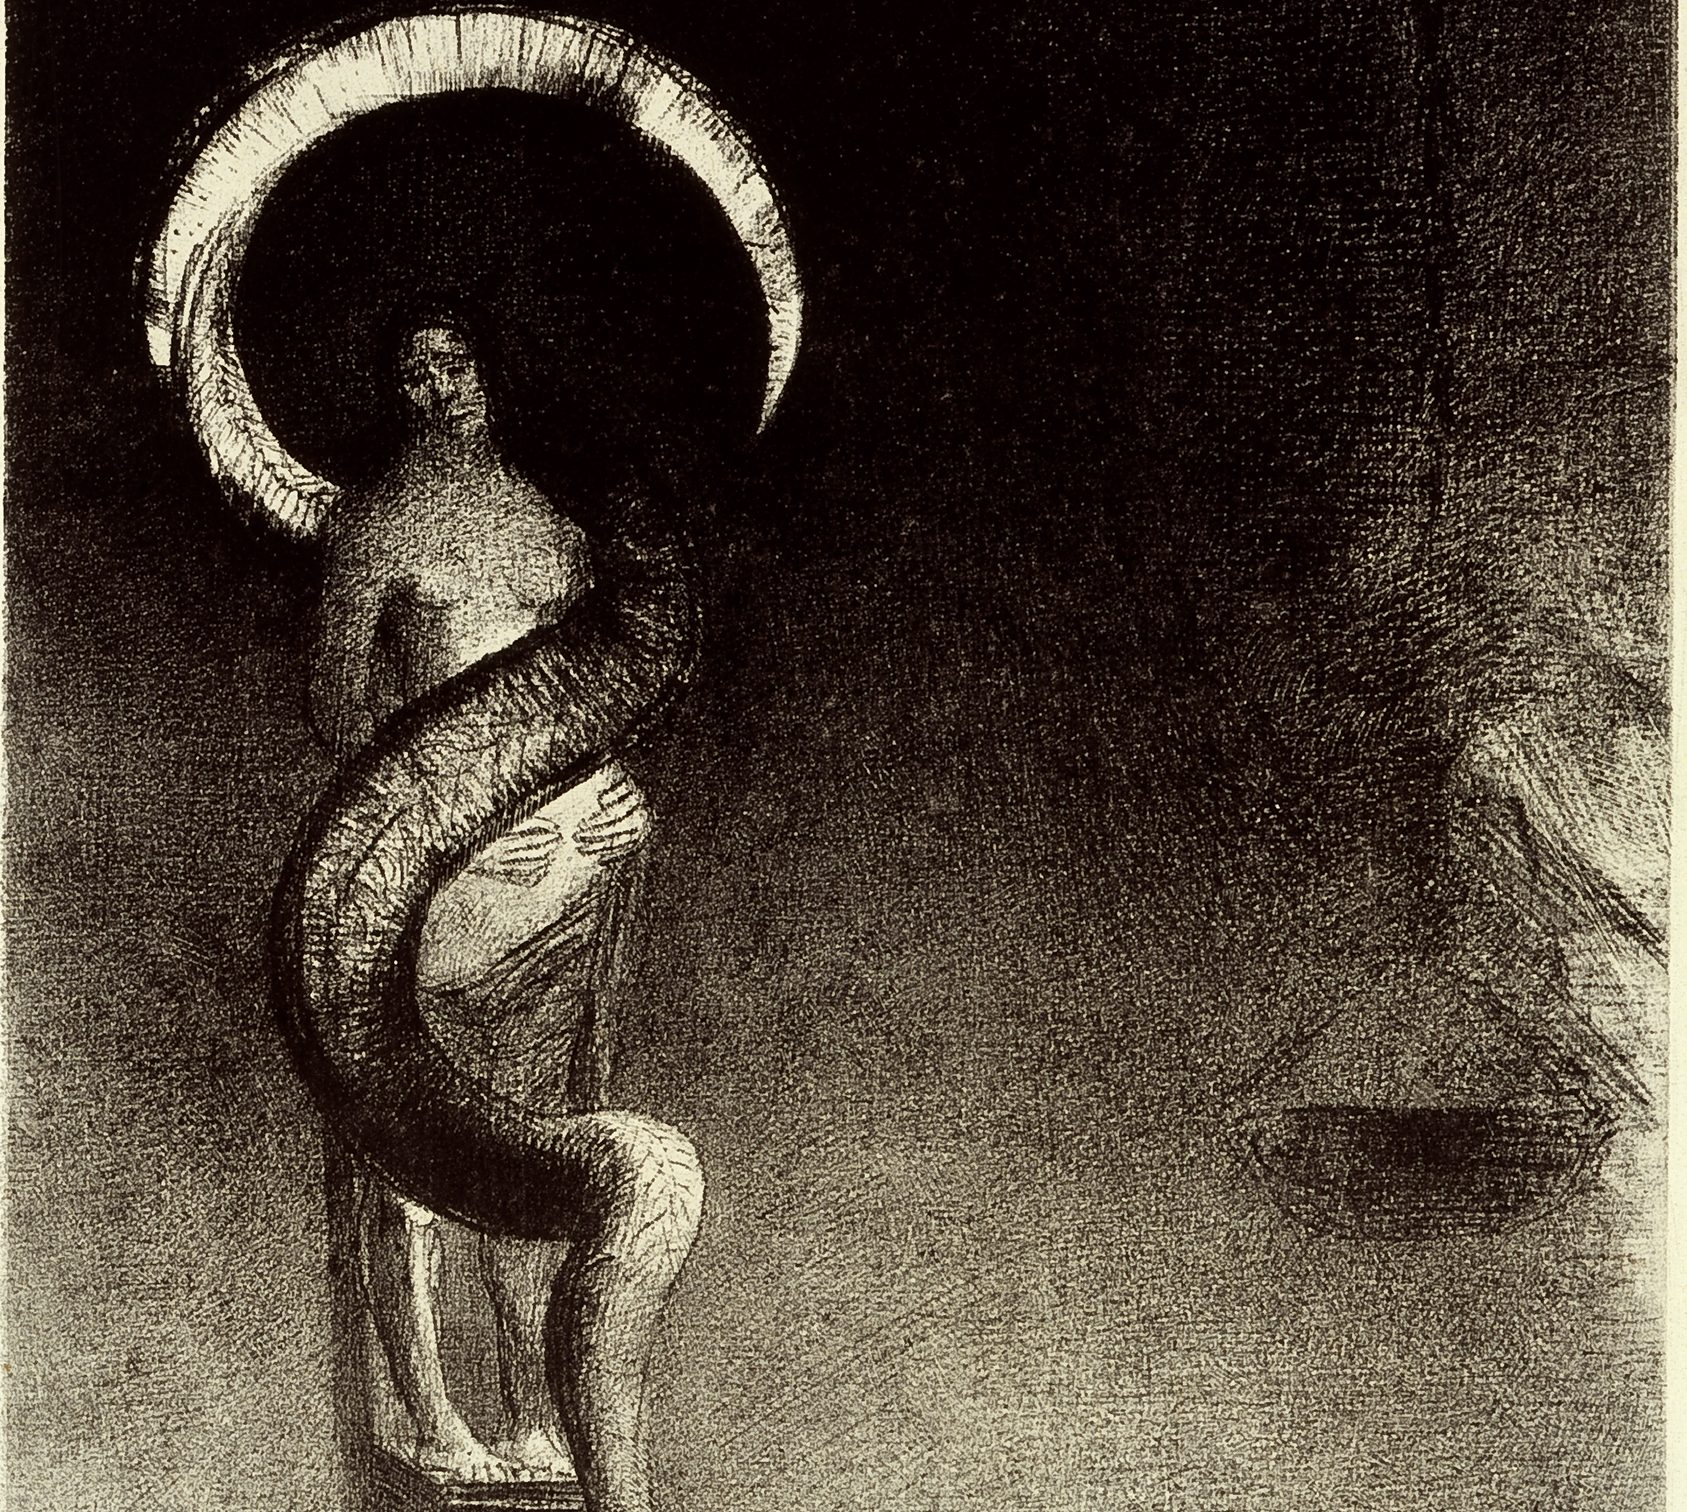 """Image of """"Serpent-Auréole (Serpent-Halo)"""" by Odilon Redon a lithograph print featuring a female figure with hands on her stomach being entwined by a serpent that forms a halo above her head"""